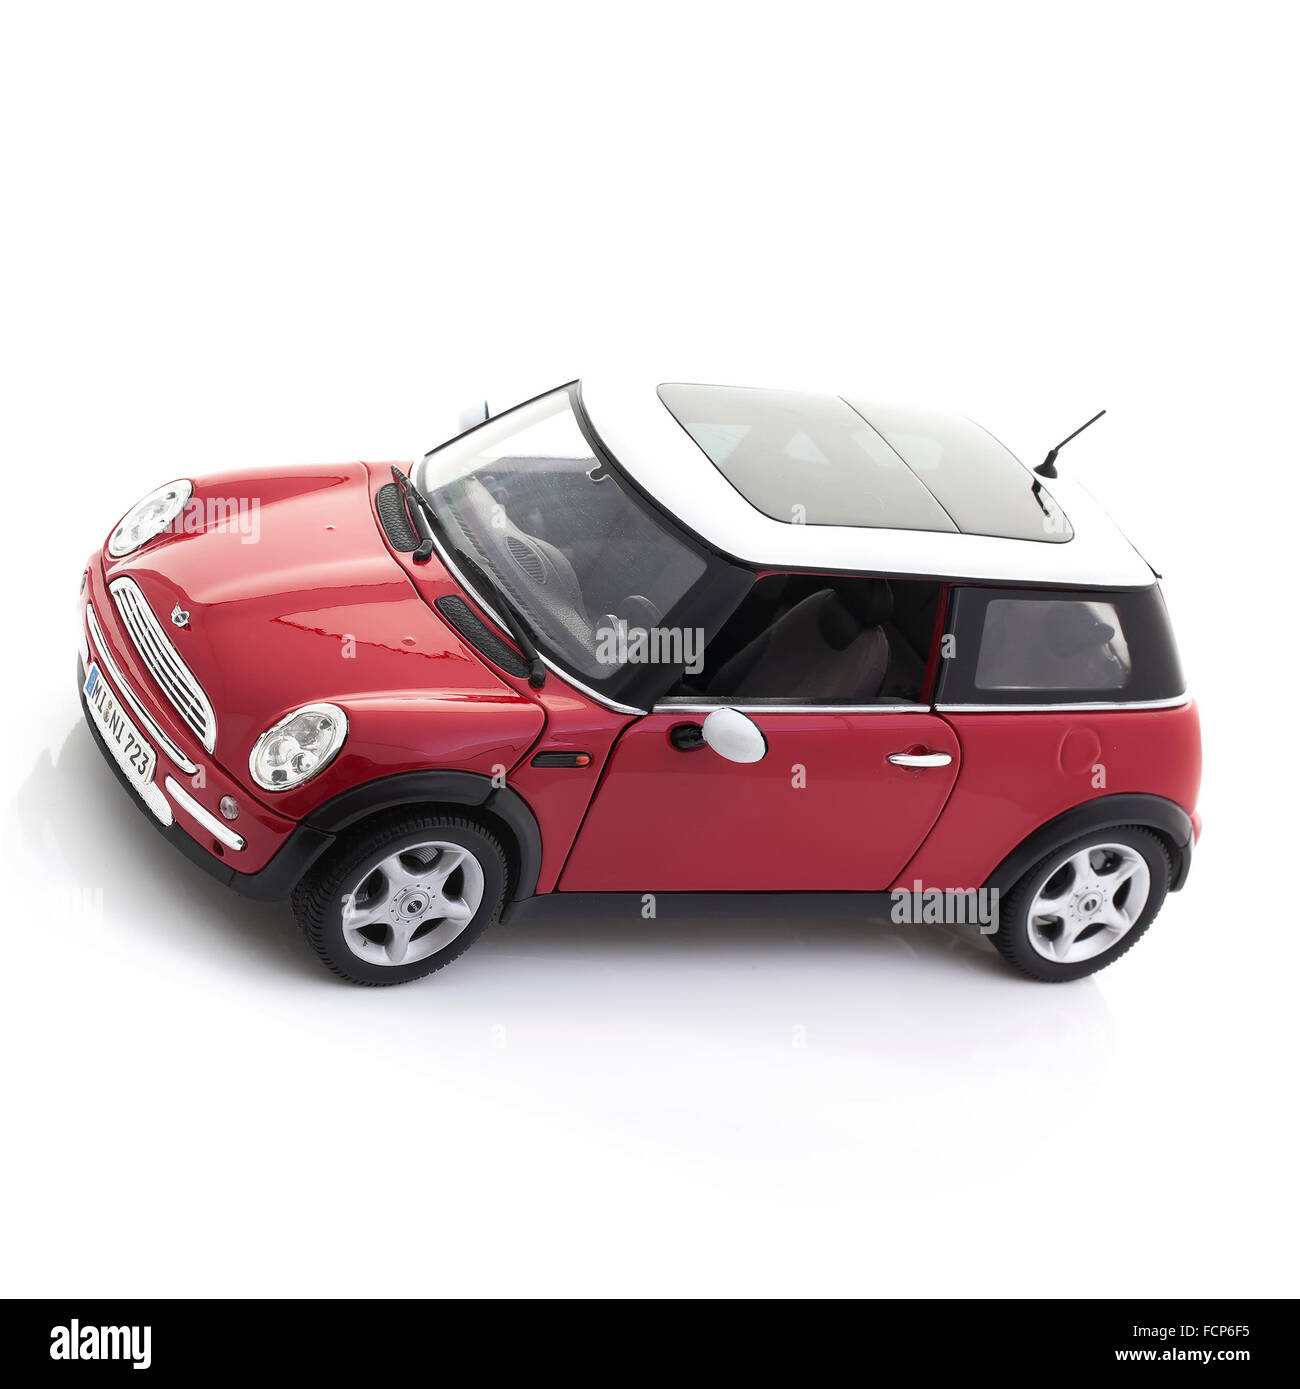 New Style Mini Cooper on a White Background - Stock Image